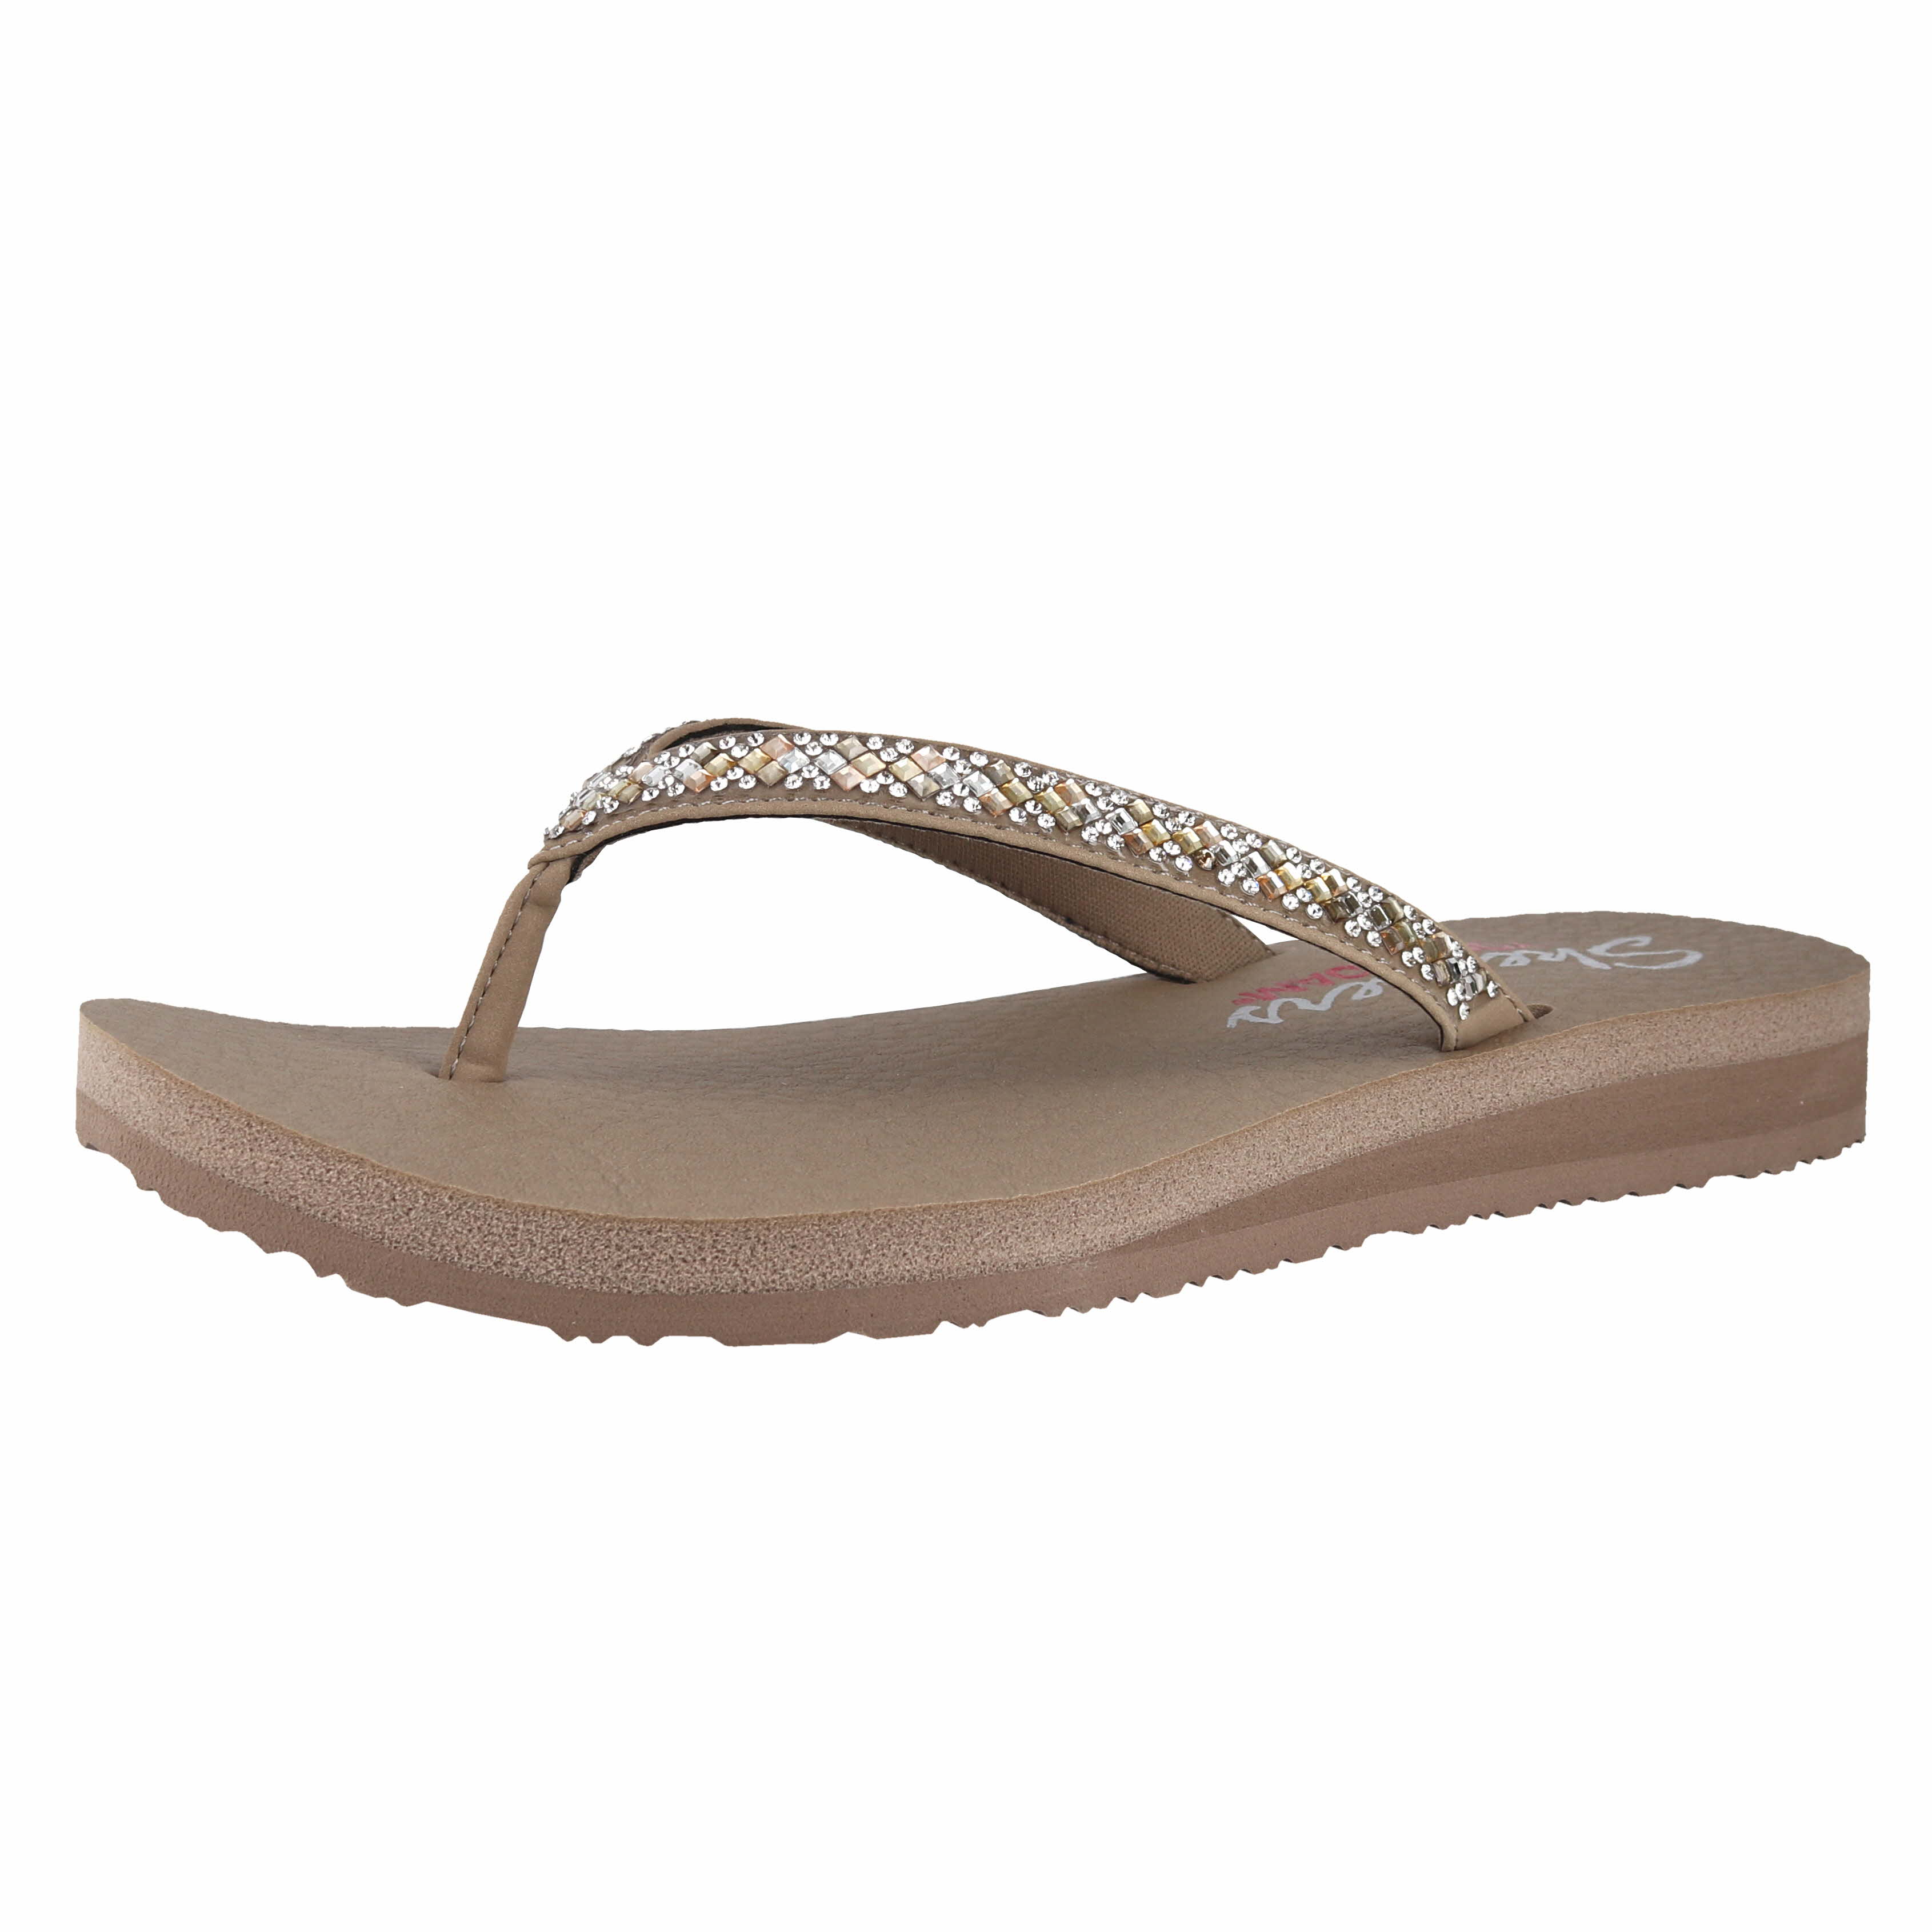 b9bd4faba Skechers Meditation - Perfect 10 Taupe Womens Flip-Flop Size 9M ...